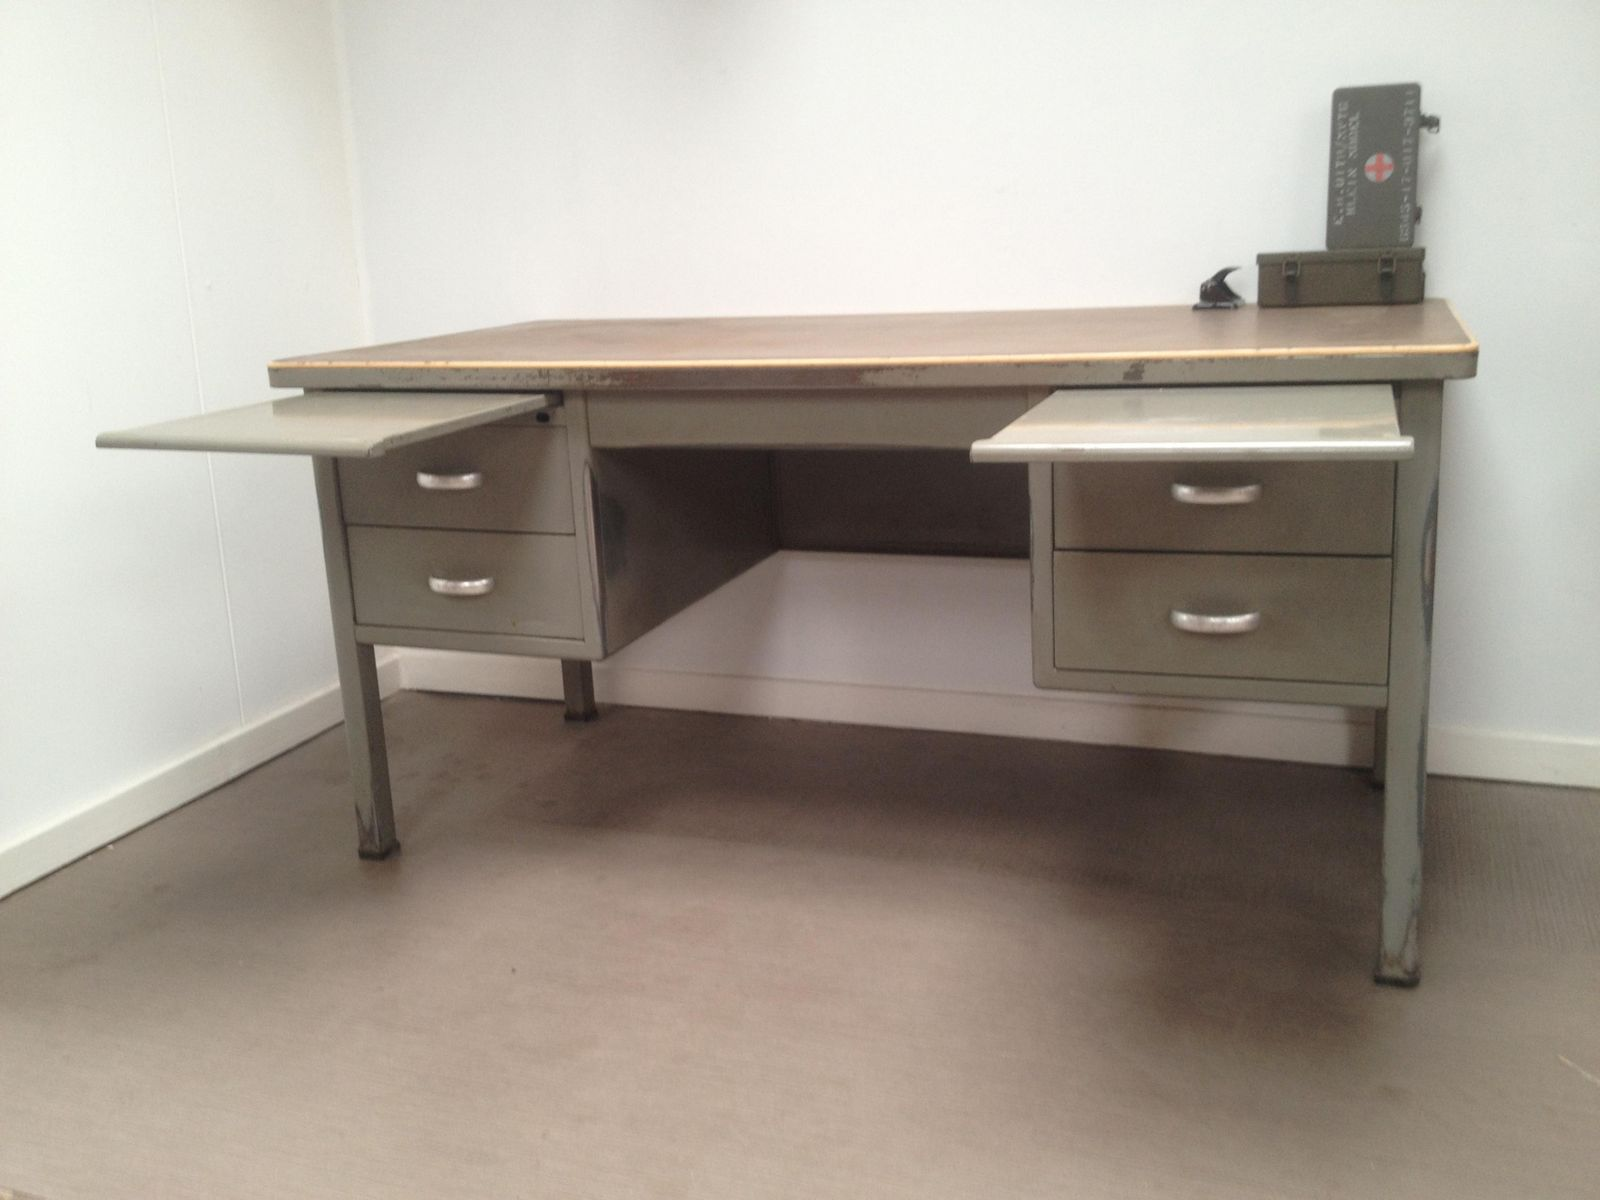 dutch industrial desk from gispen 1958 for sale at pamono. Black Bedroom Furniture Sets. Home Design Ideas